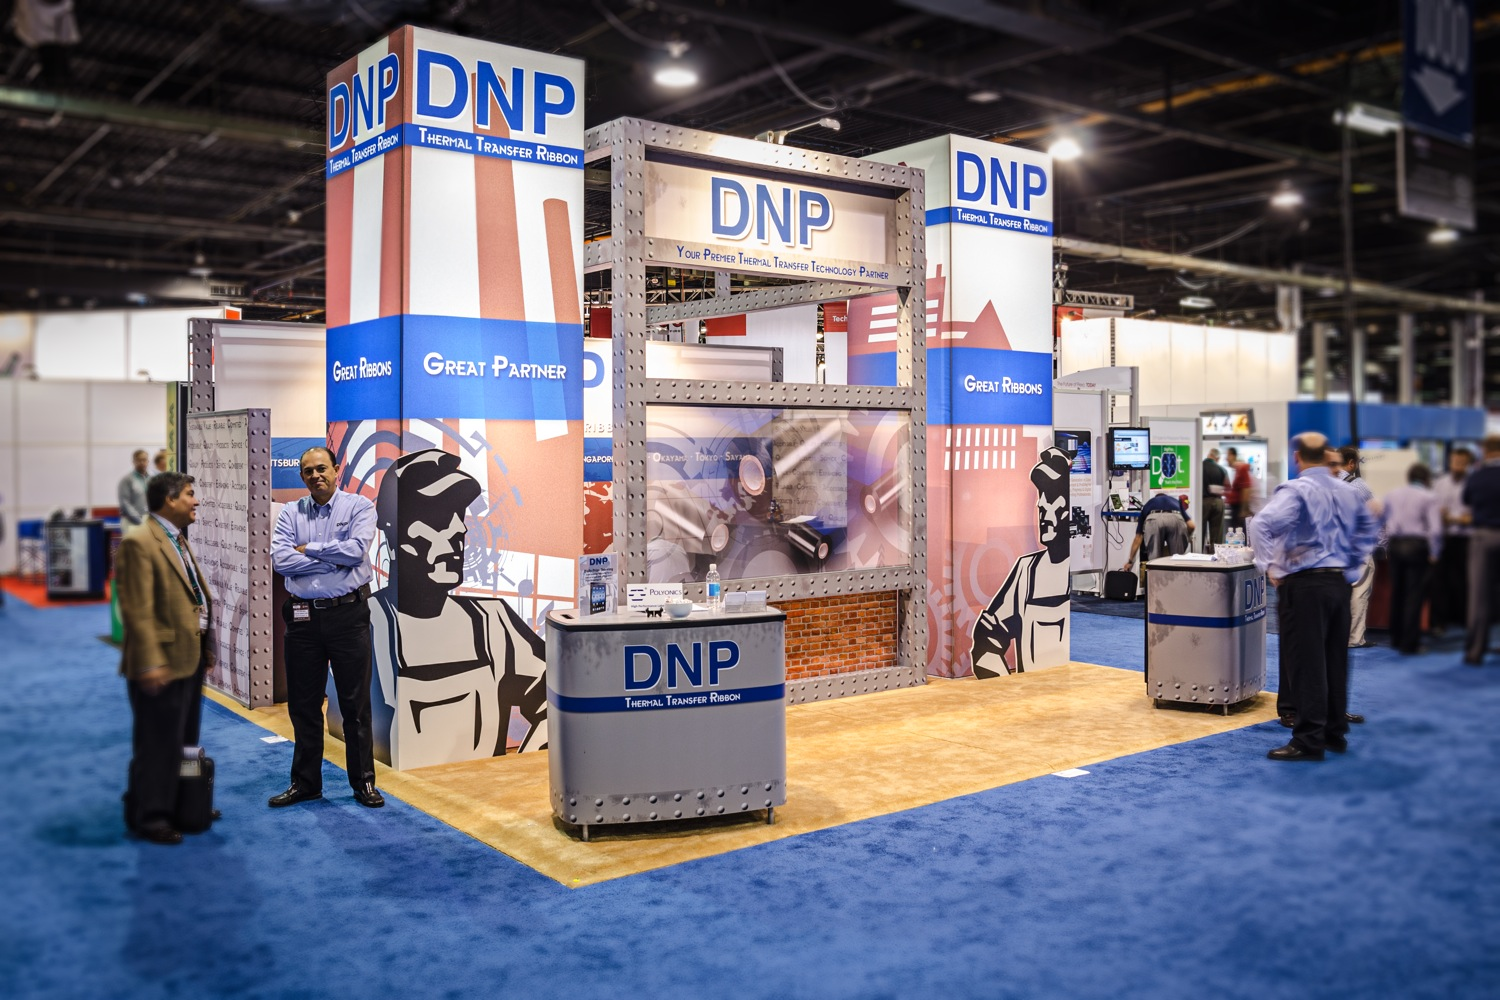 DNP Exhibit Photography at FabTech in Chicago